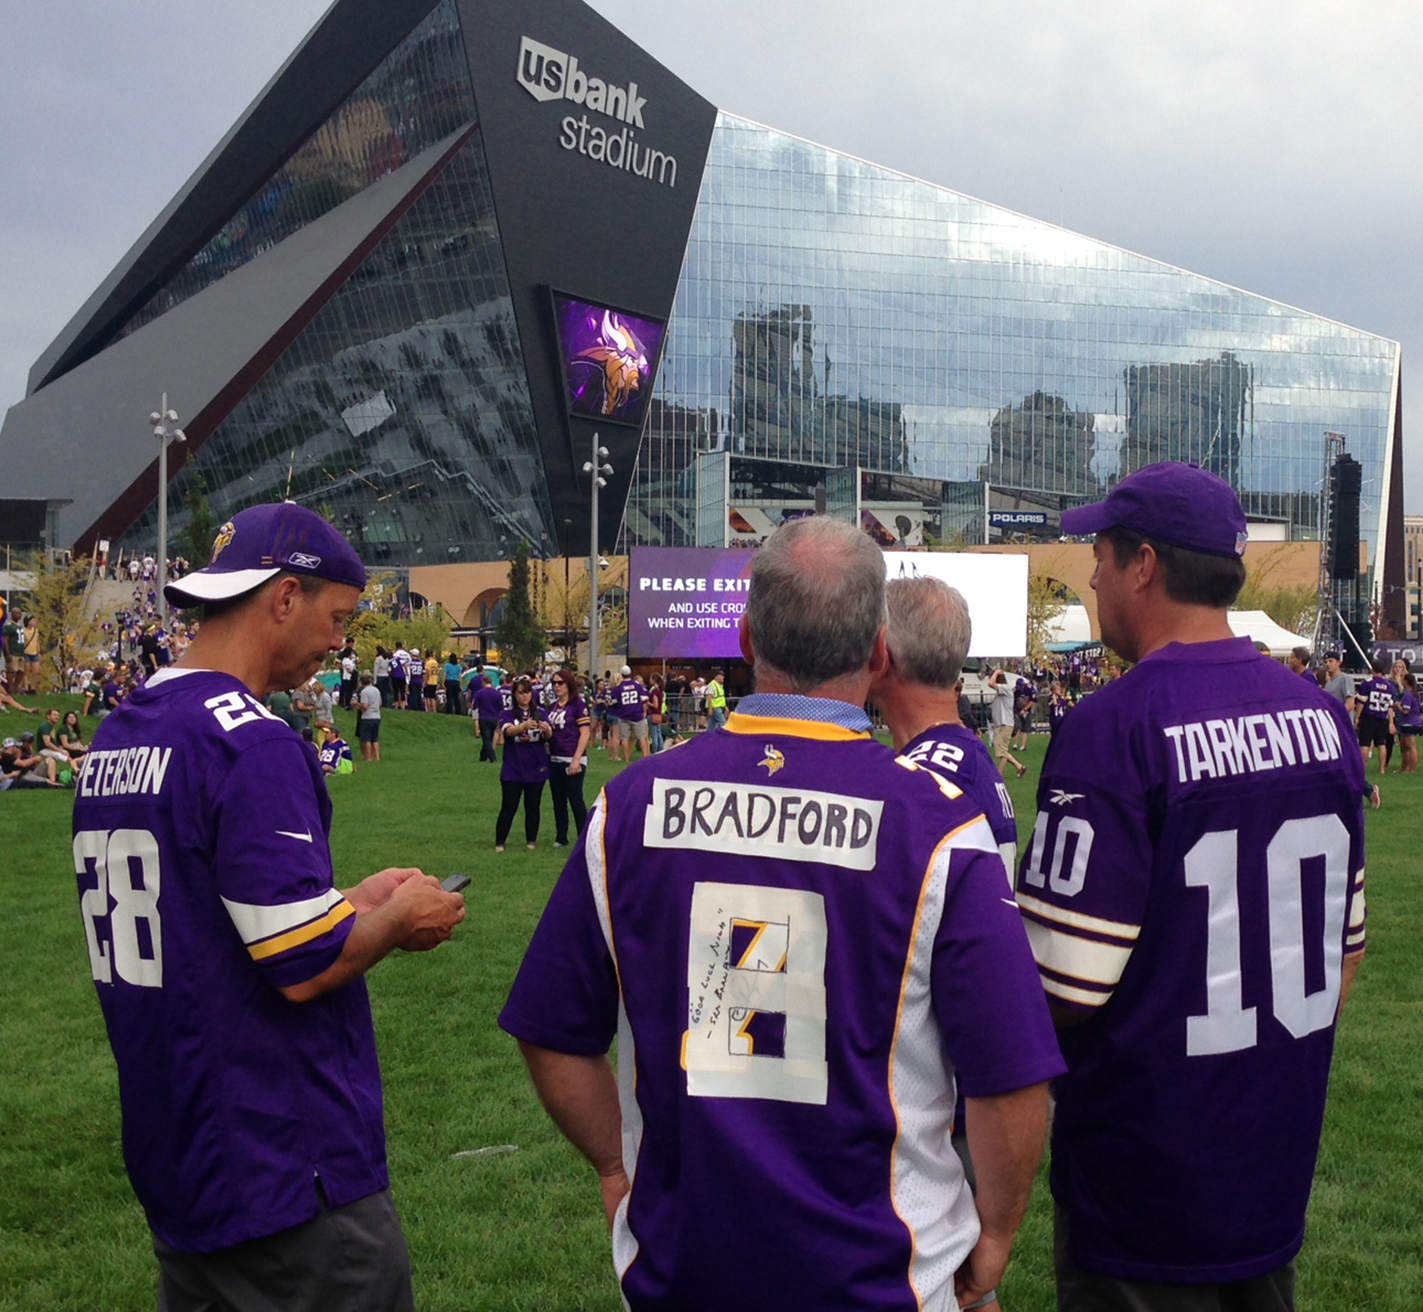 Makeshift Sam Bradford jersey stands out above those of (many ...